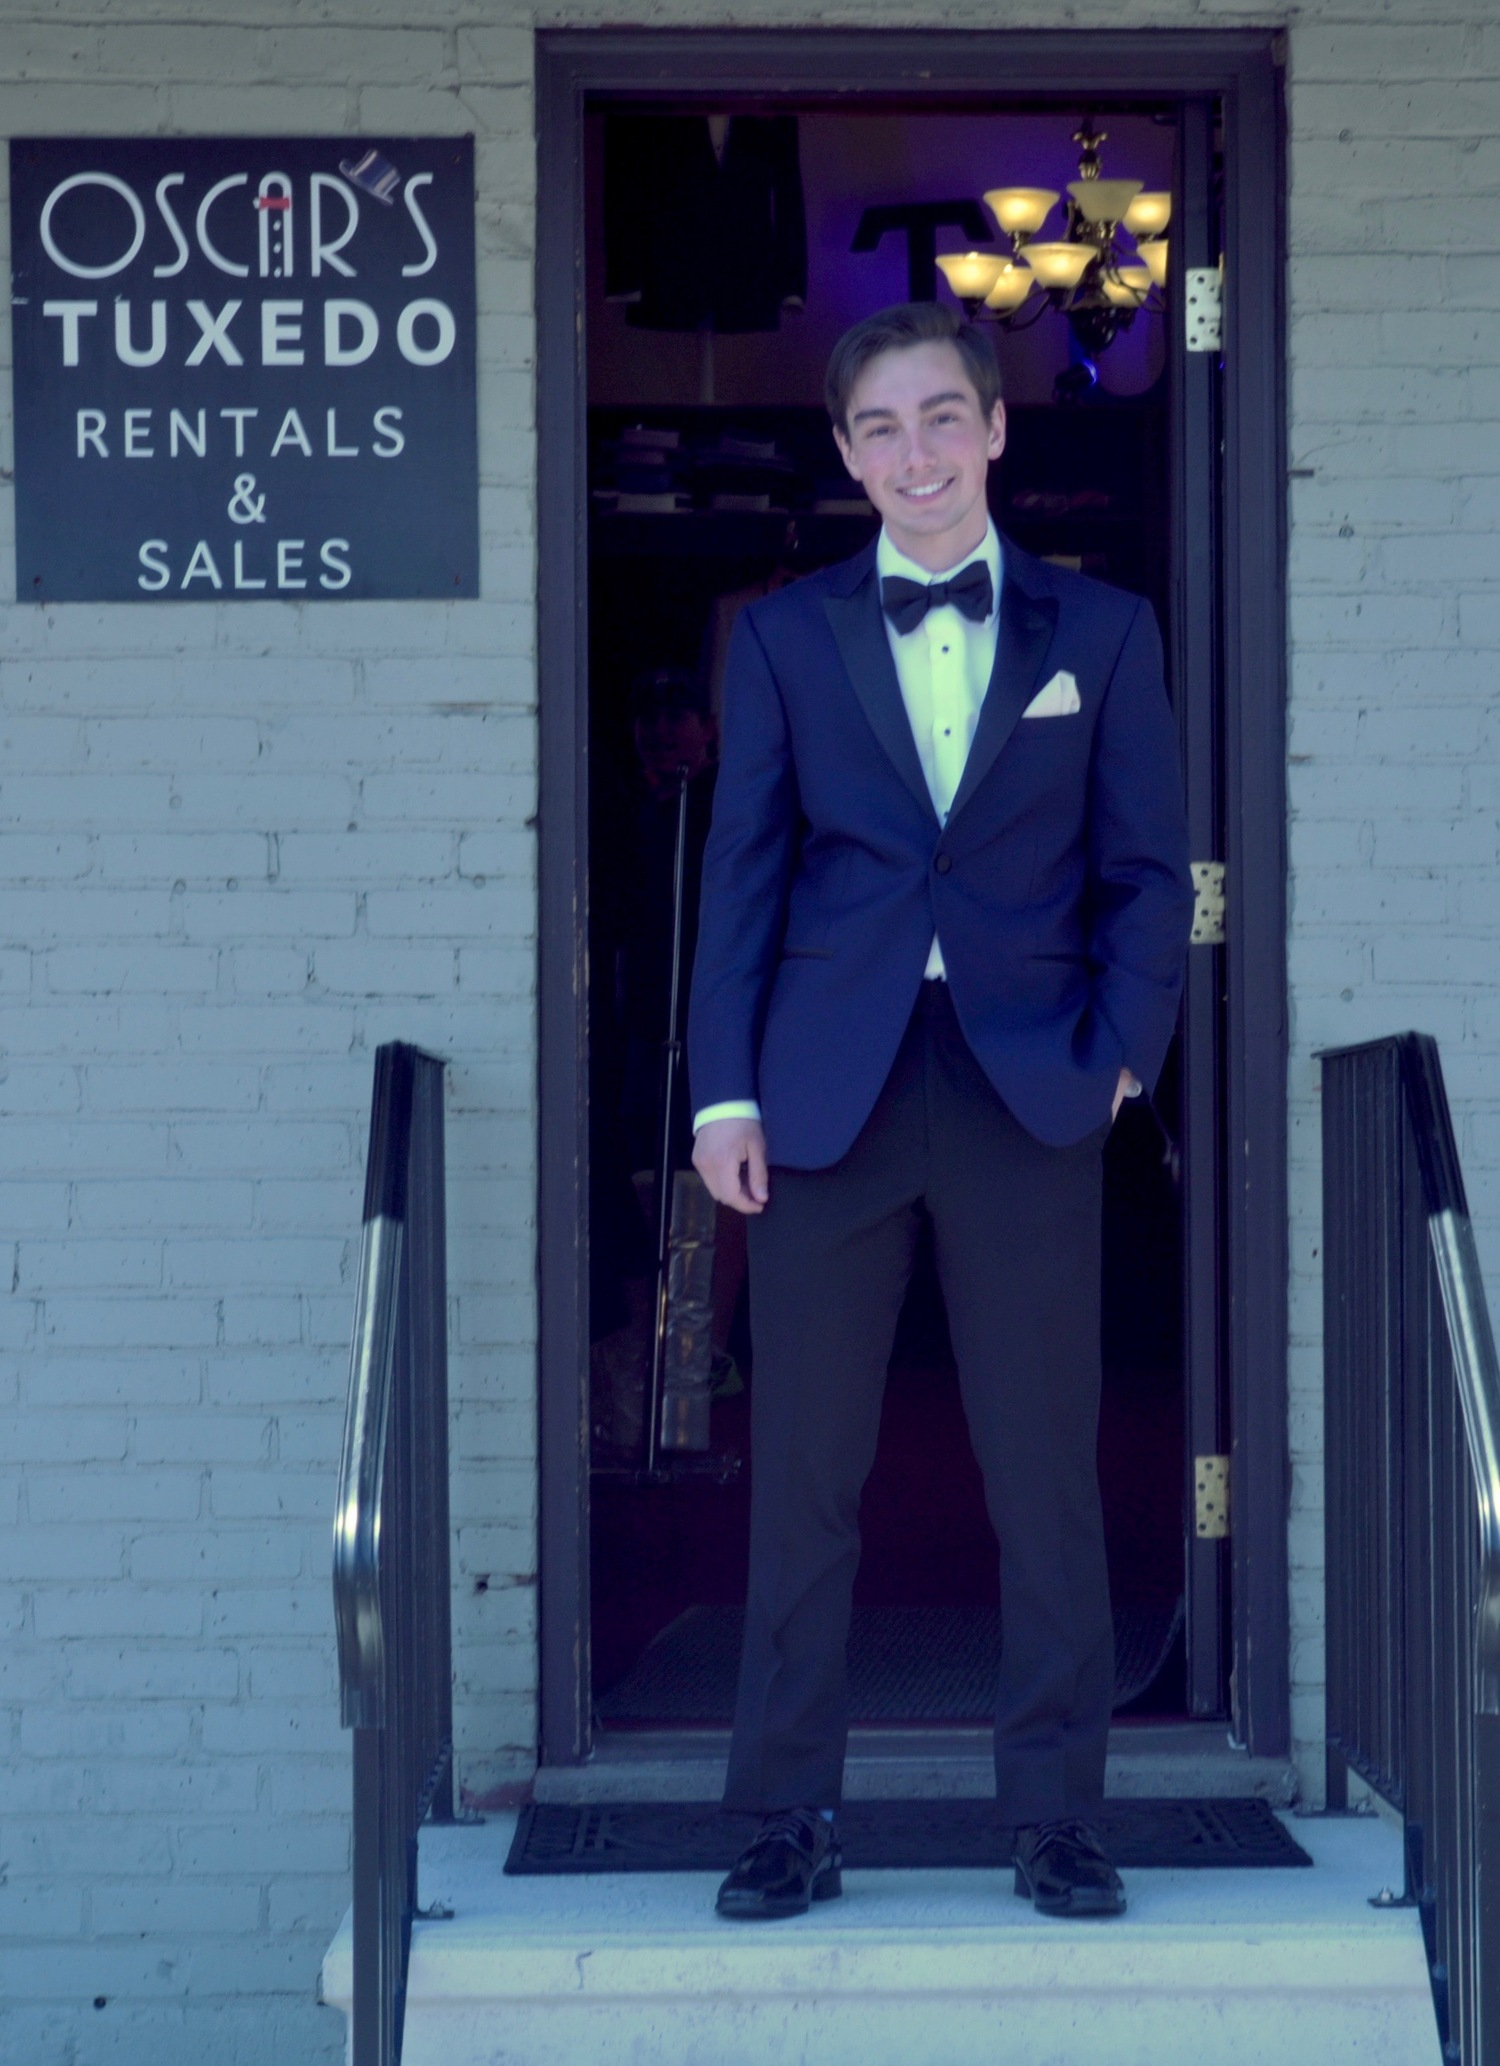 Prom & Black Tie Customers Photos — OSCARS TUX Hollywood Driven! Top ...